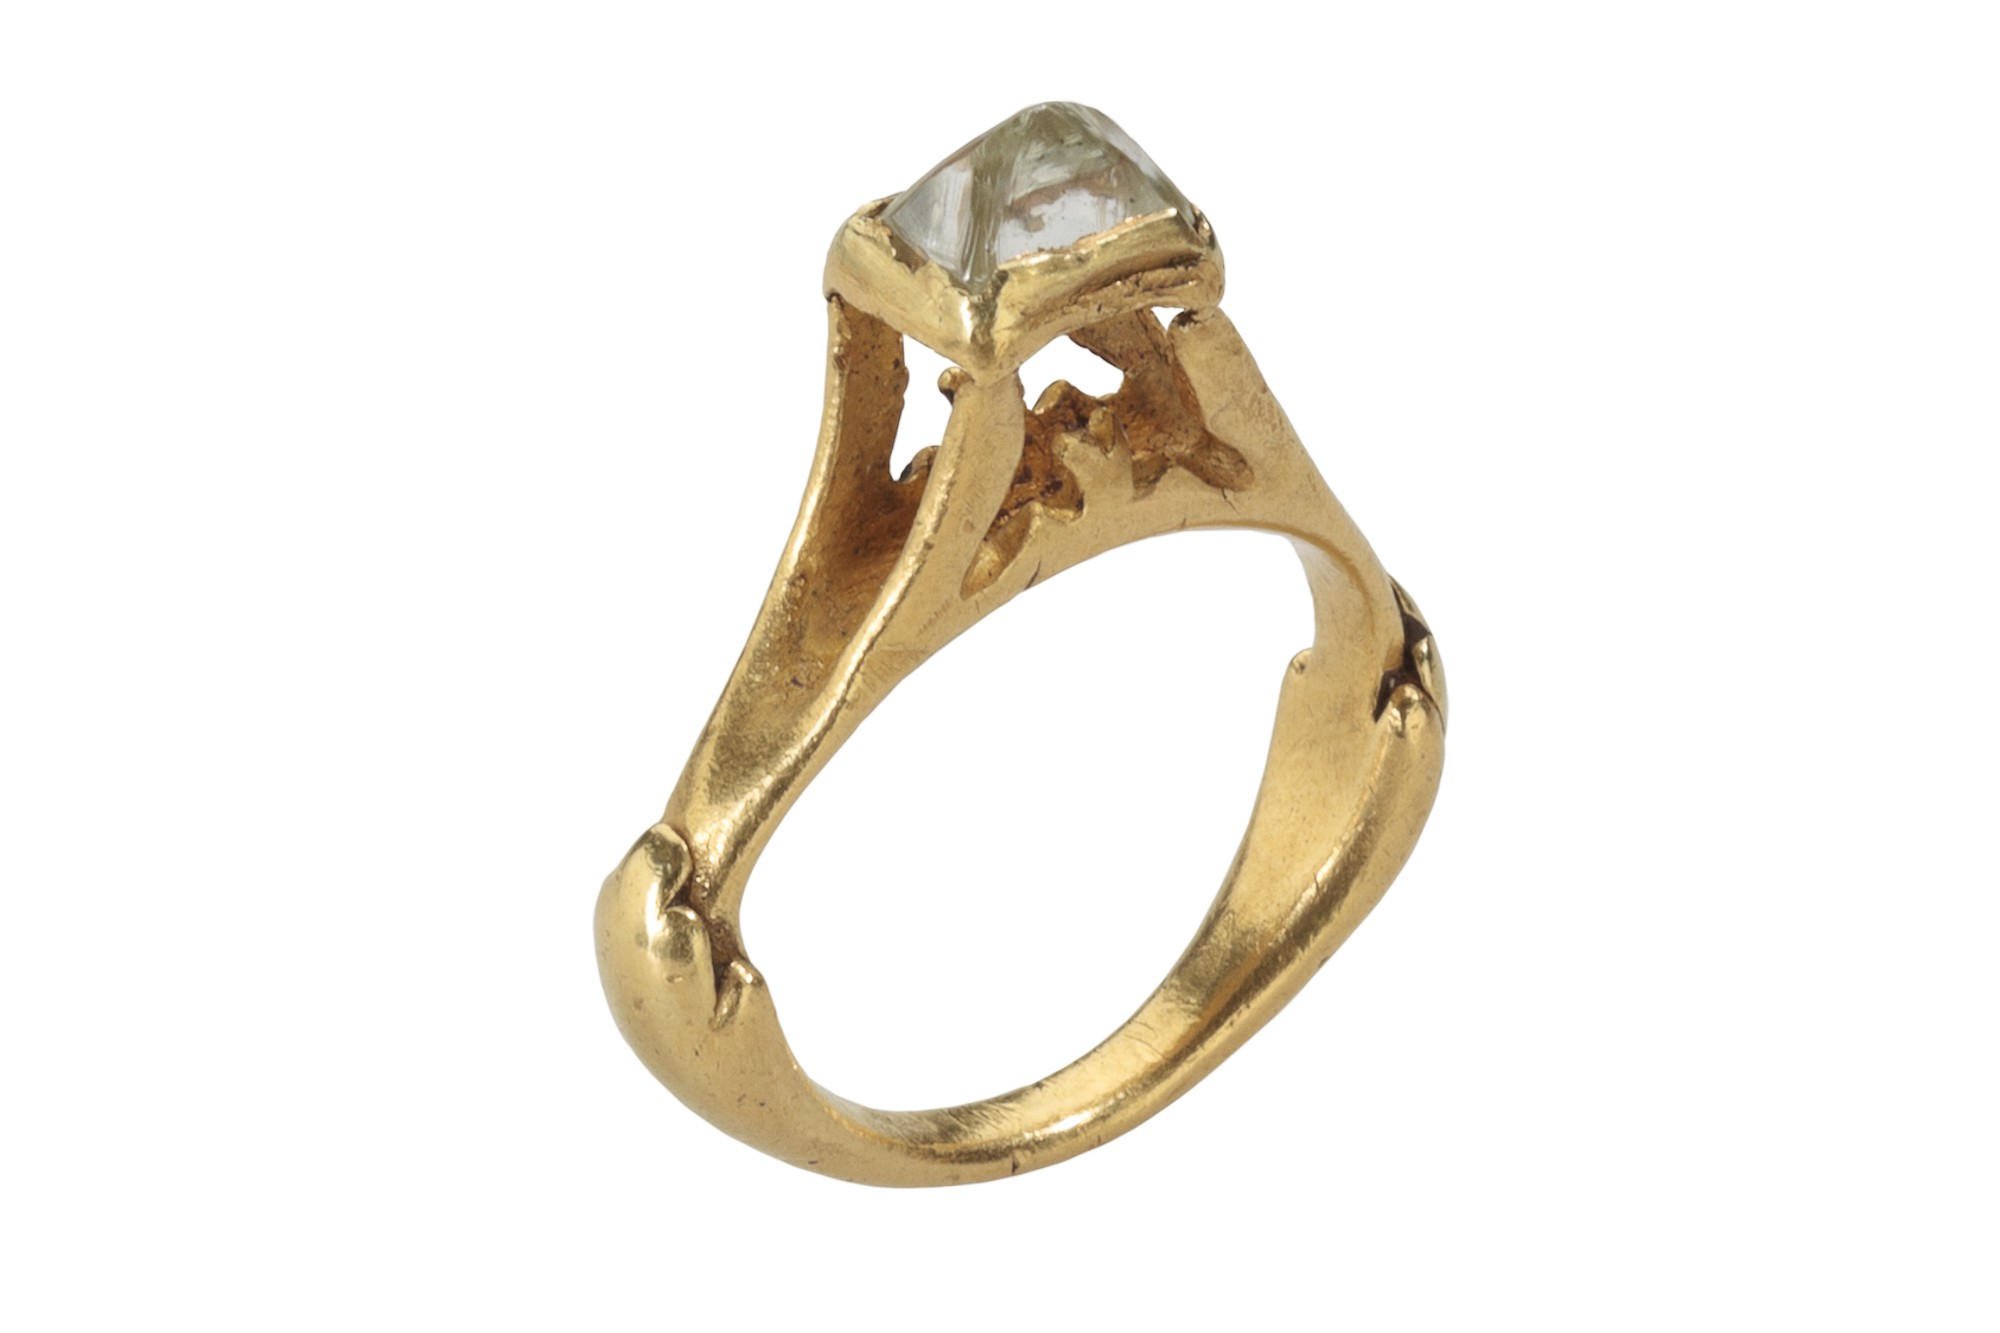 Ancient Roman Rings ancient greek and roman diamonds - evan rudnick - medium